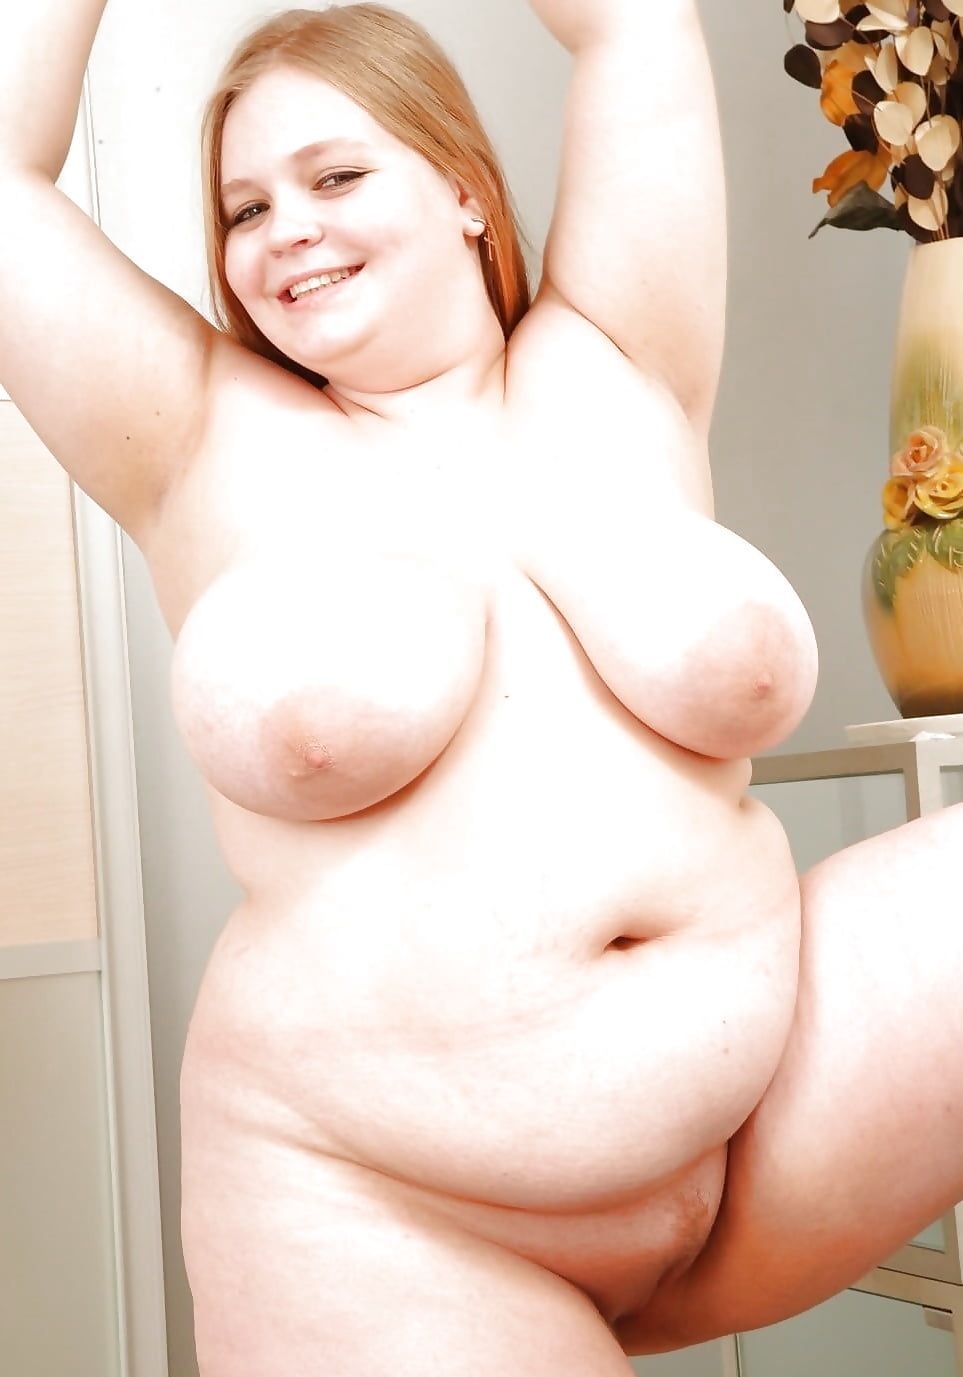 pics-of-fat-naked-girls